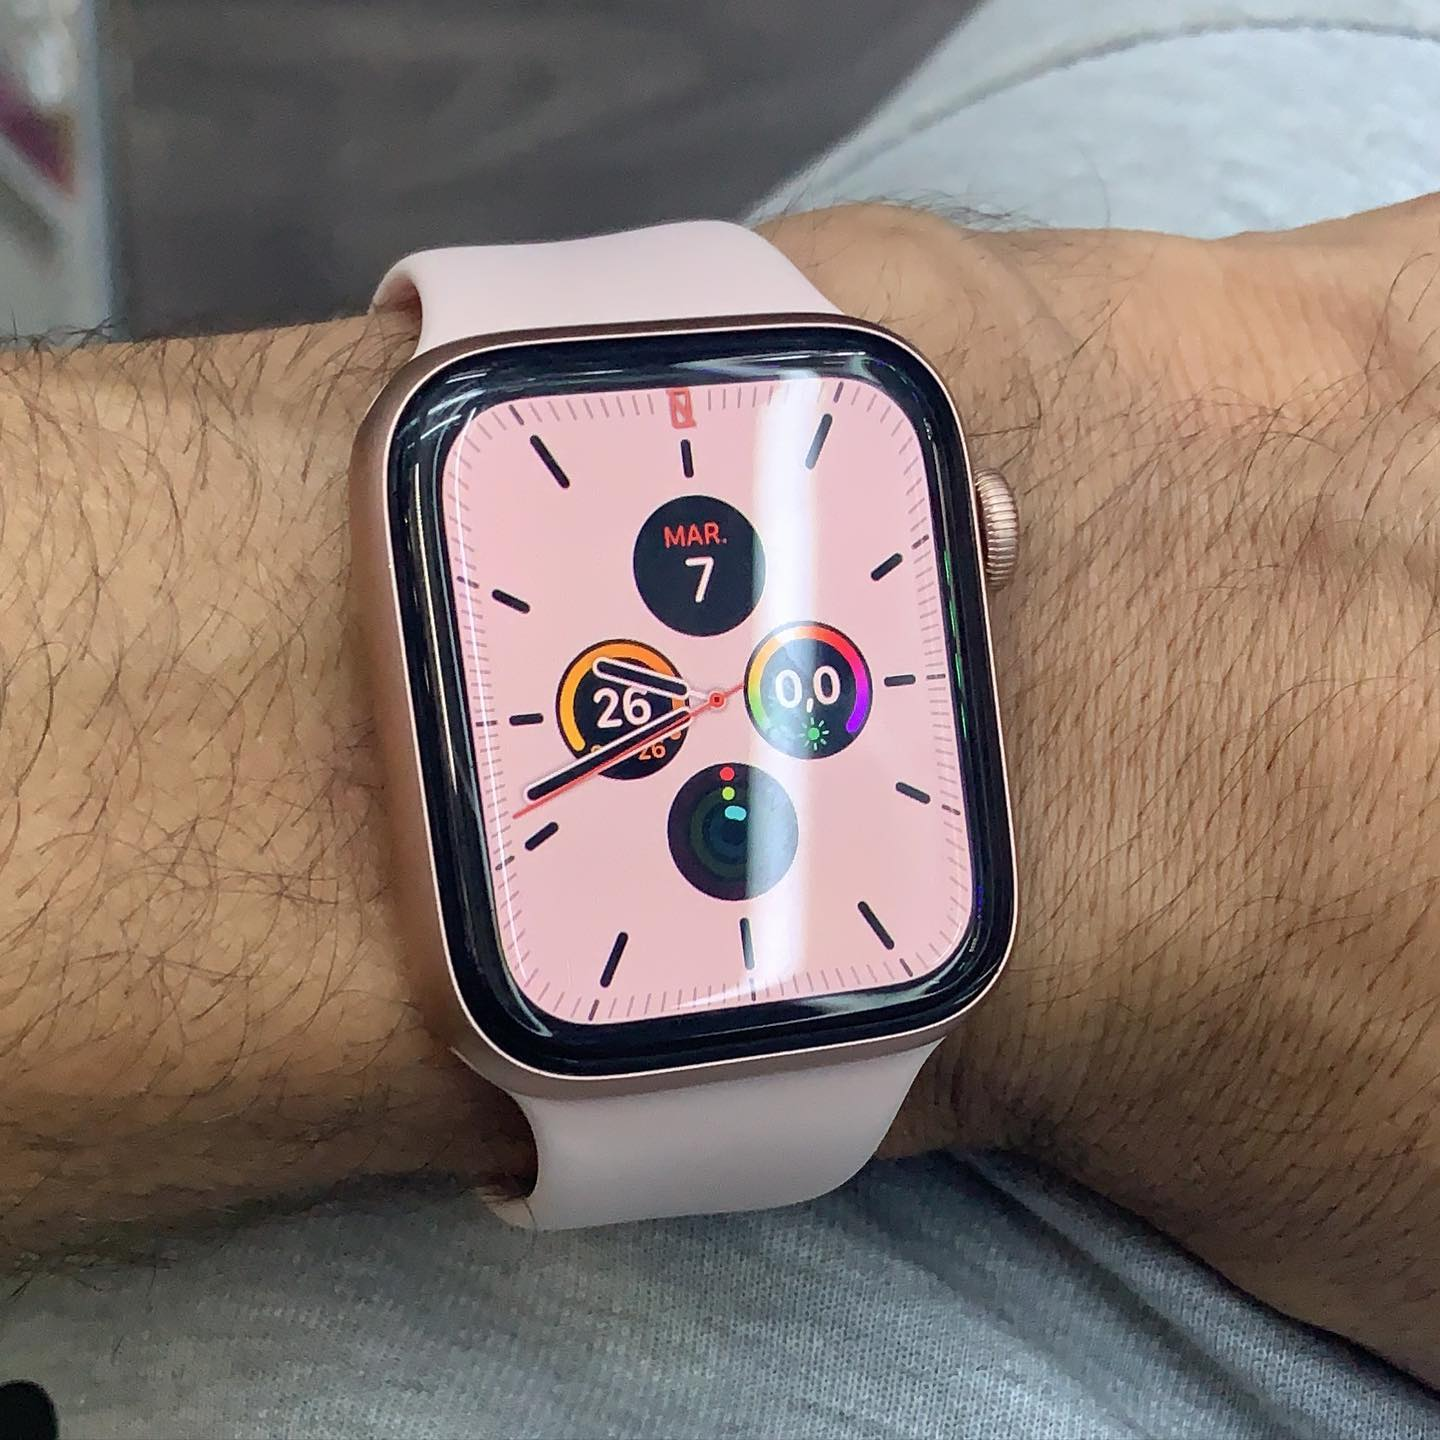 The picture of Apple Watch 5